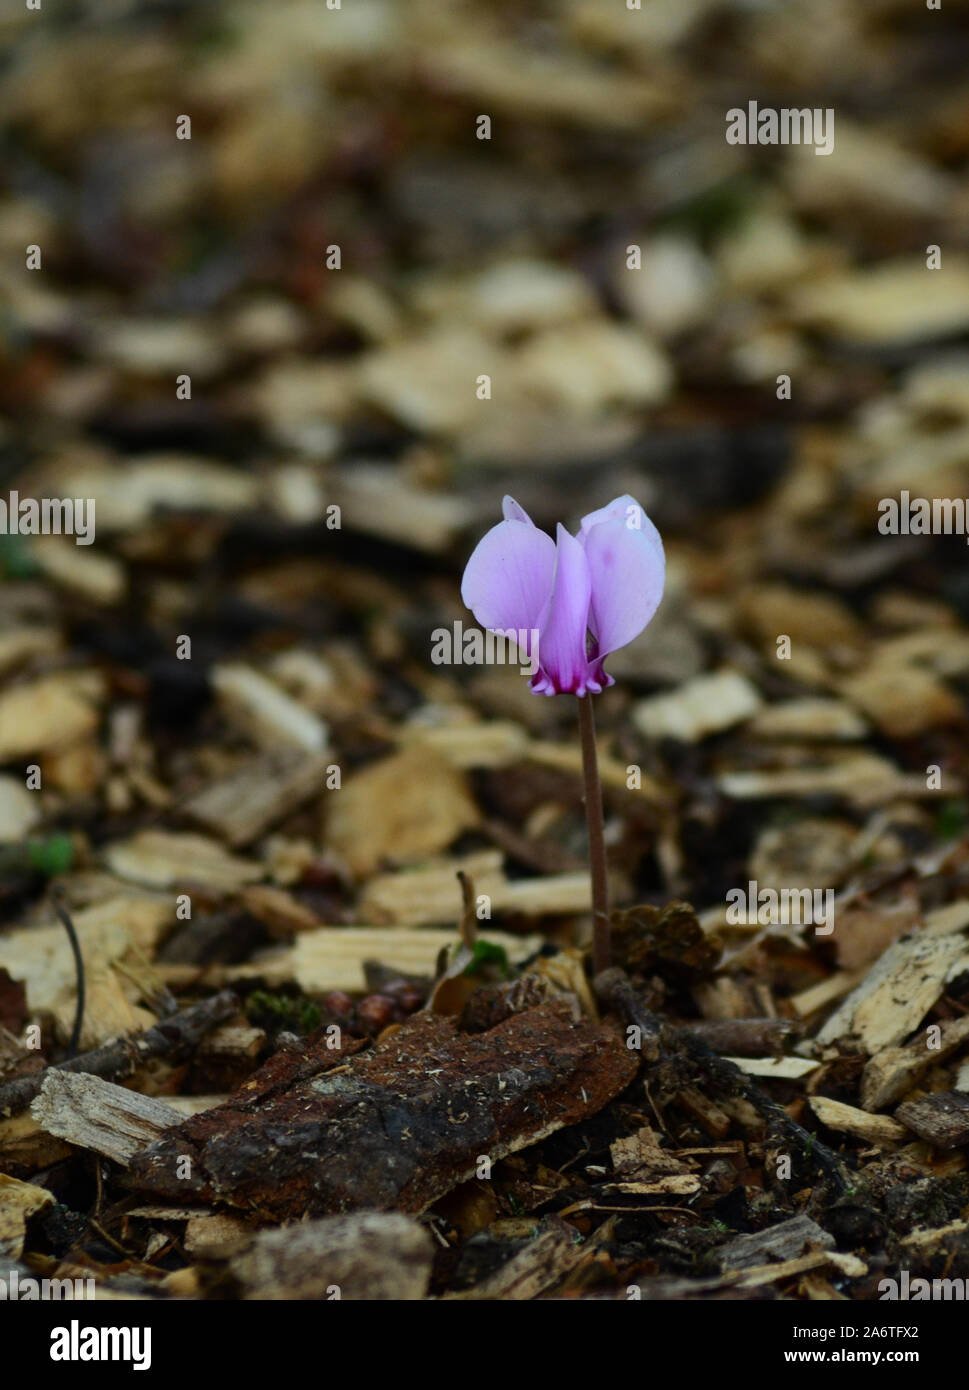 Pretty pink Cyclamen flower in amongst background of wood chippings Stock Photo